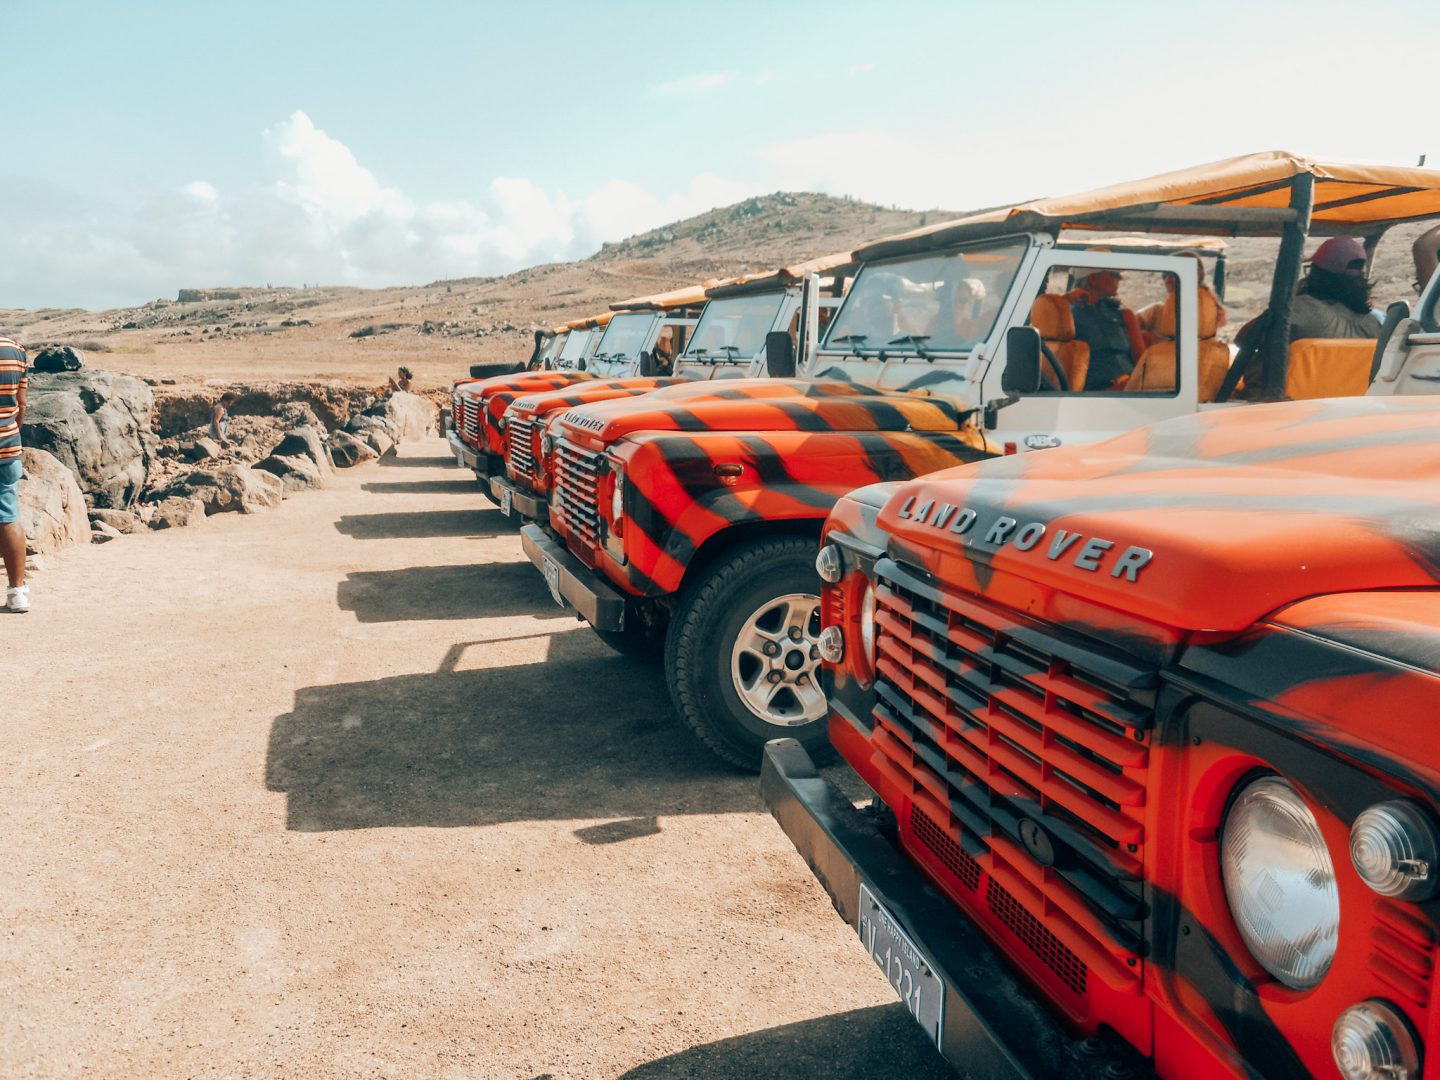 ABC tour Land Rover jeeps in Aruba